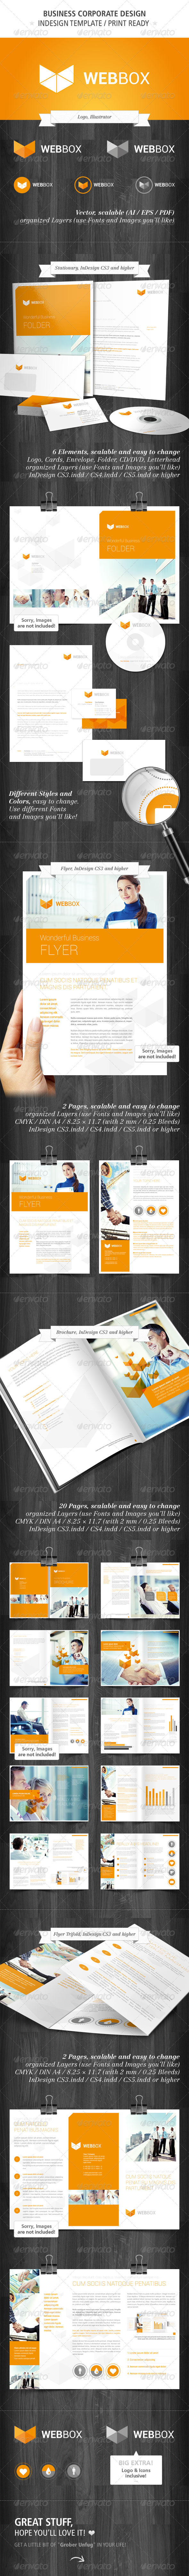 GraphicRiver Business Corporate Design 2431154